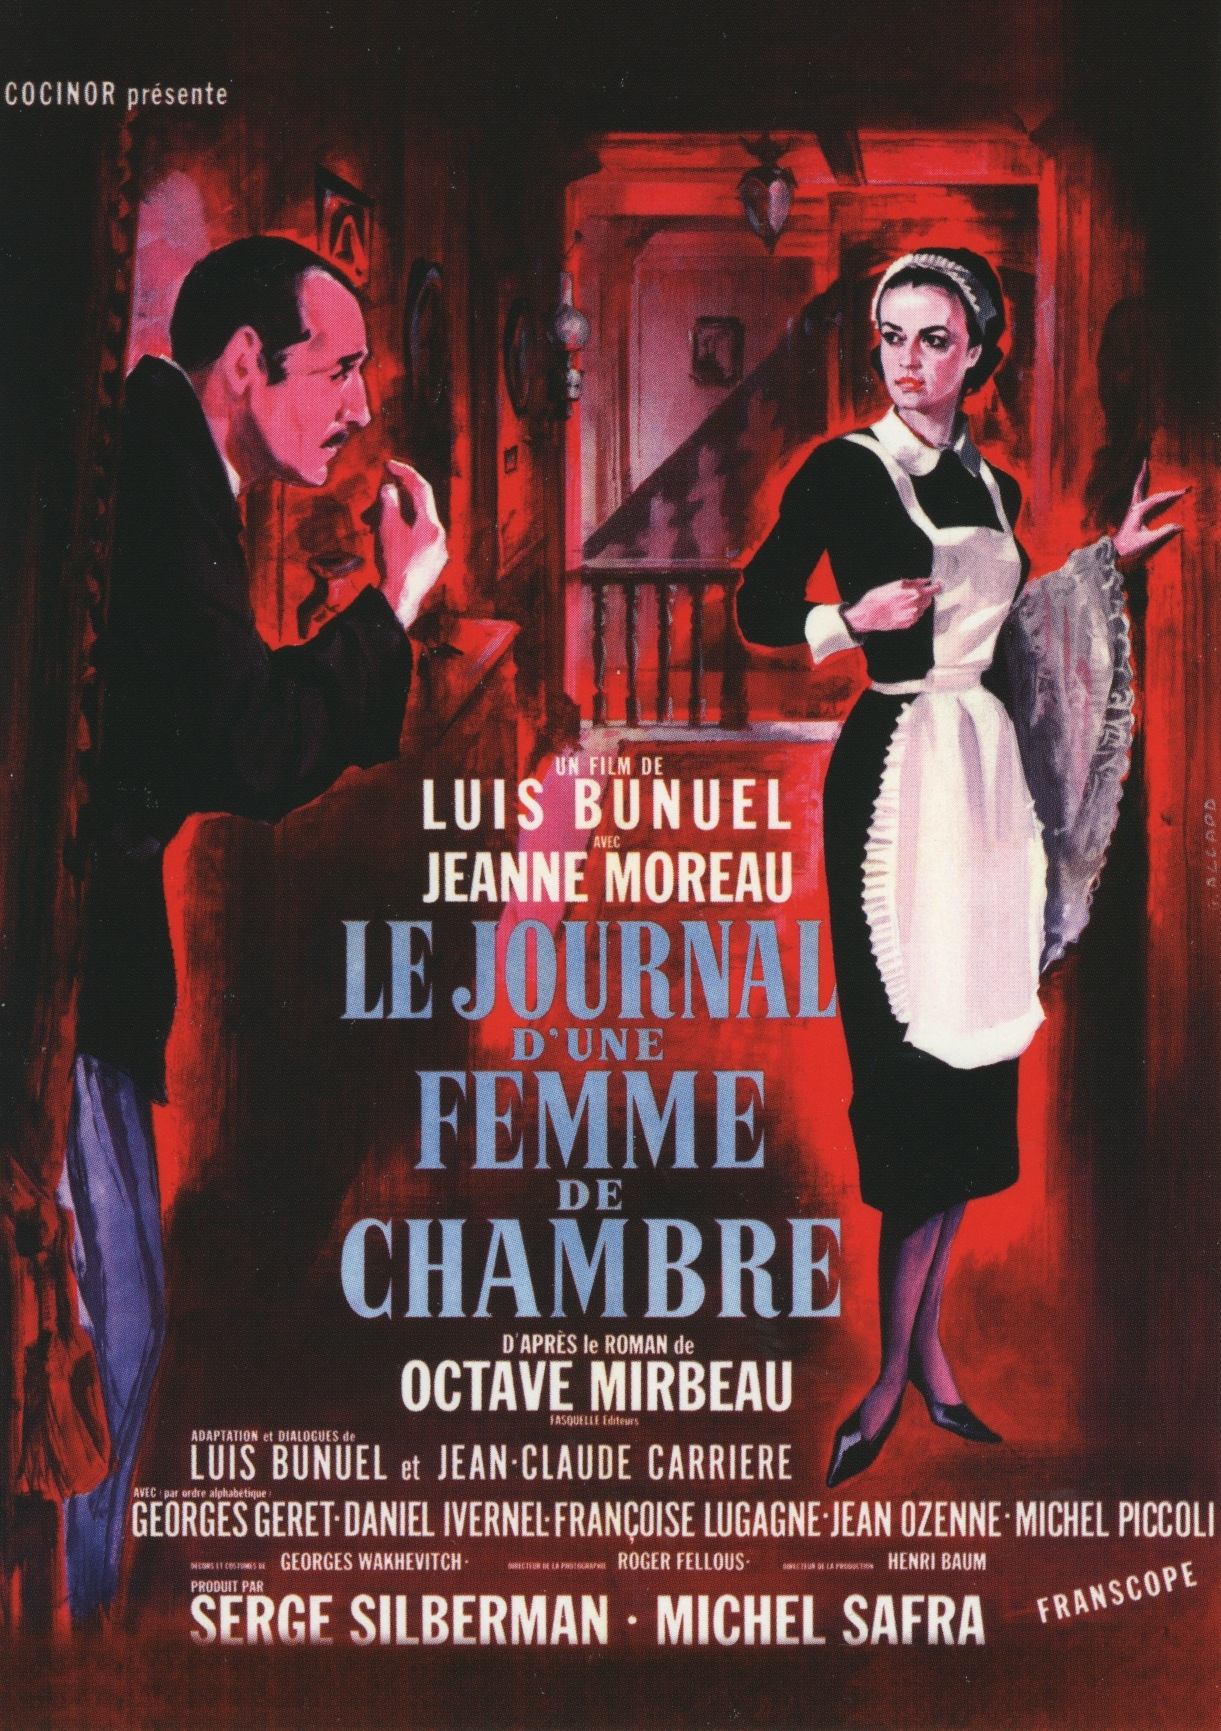 The French poster for Diary of a Chambermaid (1964)